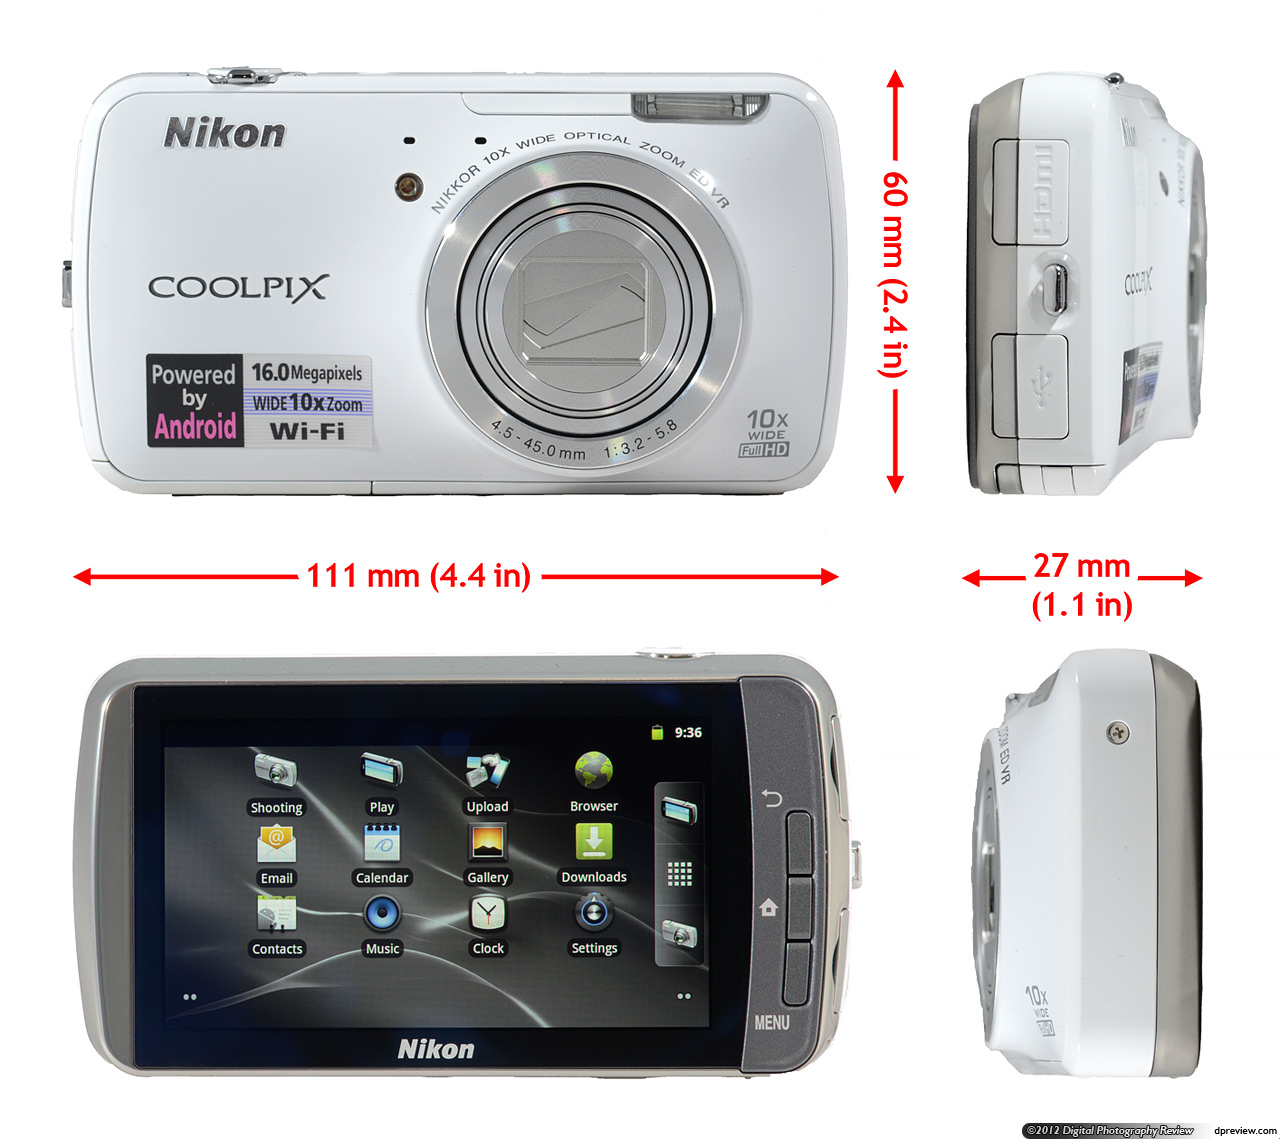 Nikon Coolpix S800c Android camera first look: Digital ...